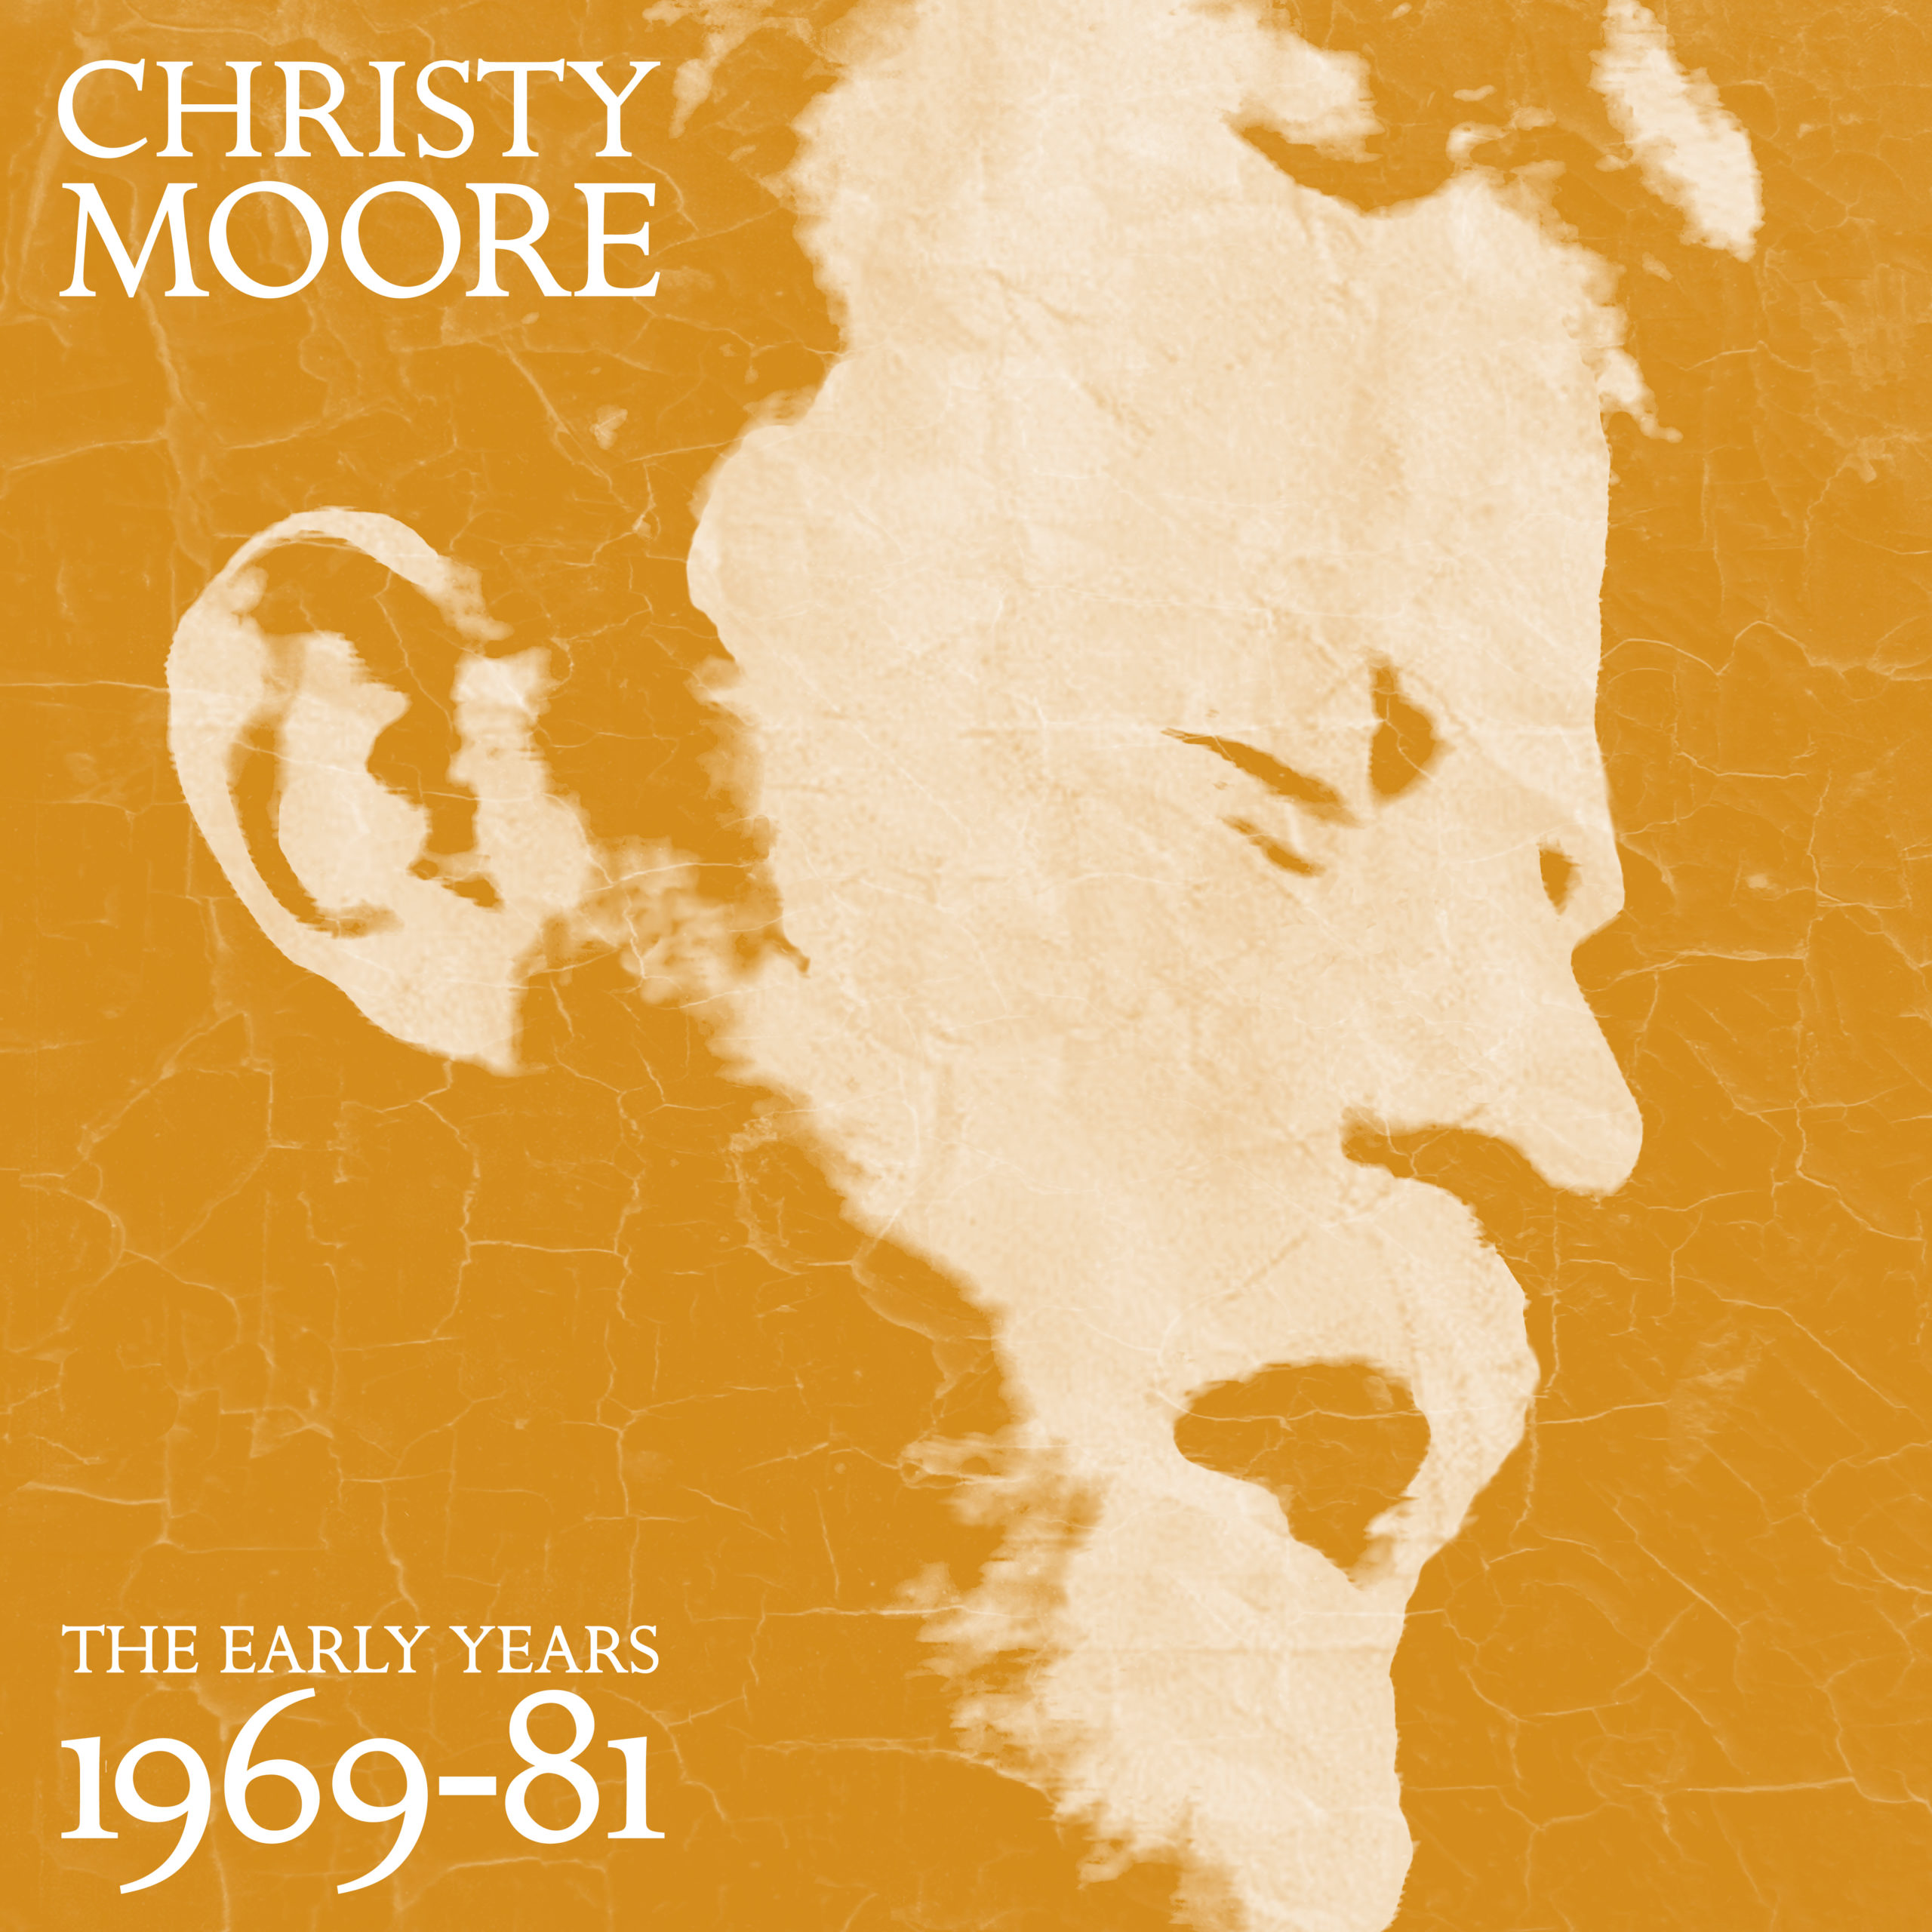 CHRISTY MOORE – The Early Years 1969-81 – 2LP – Limited White Vinyl [NOV 6th]